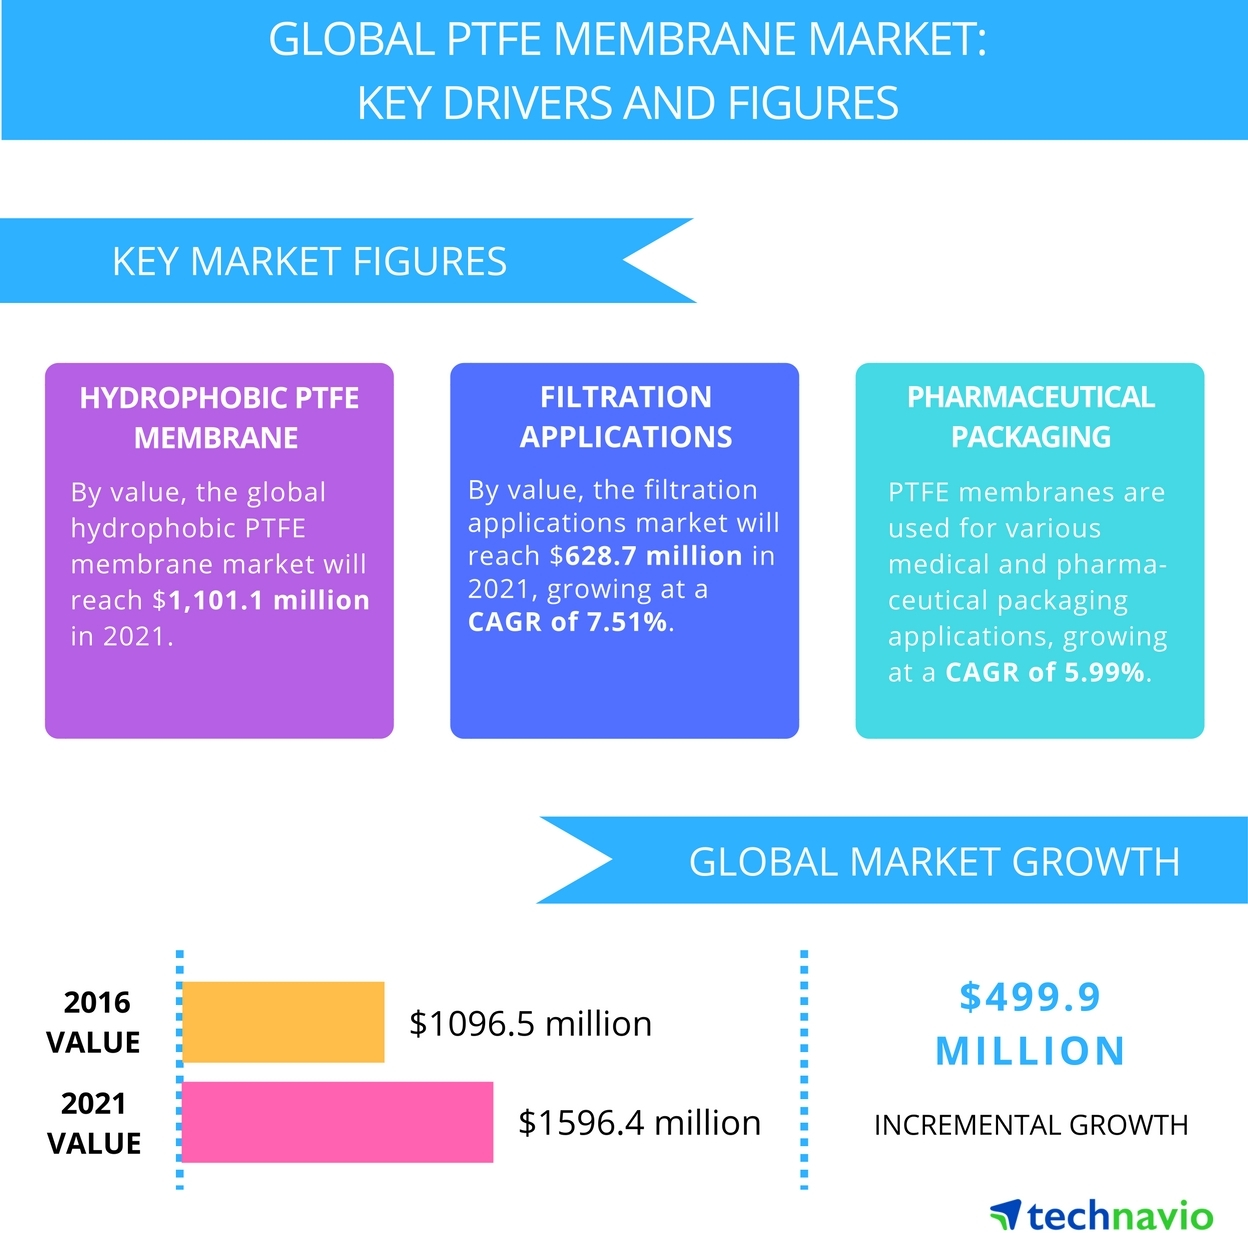 Technavio has published a new report on the global PTFE membrane market from 2017-2021.